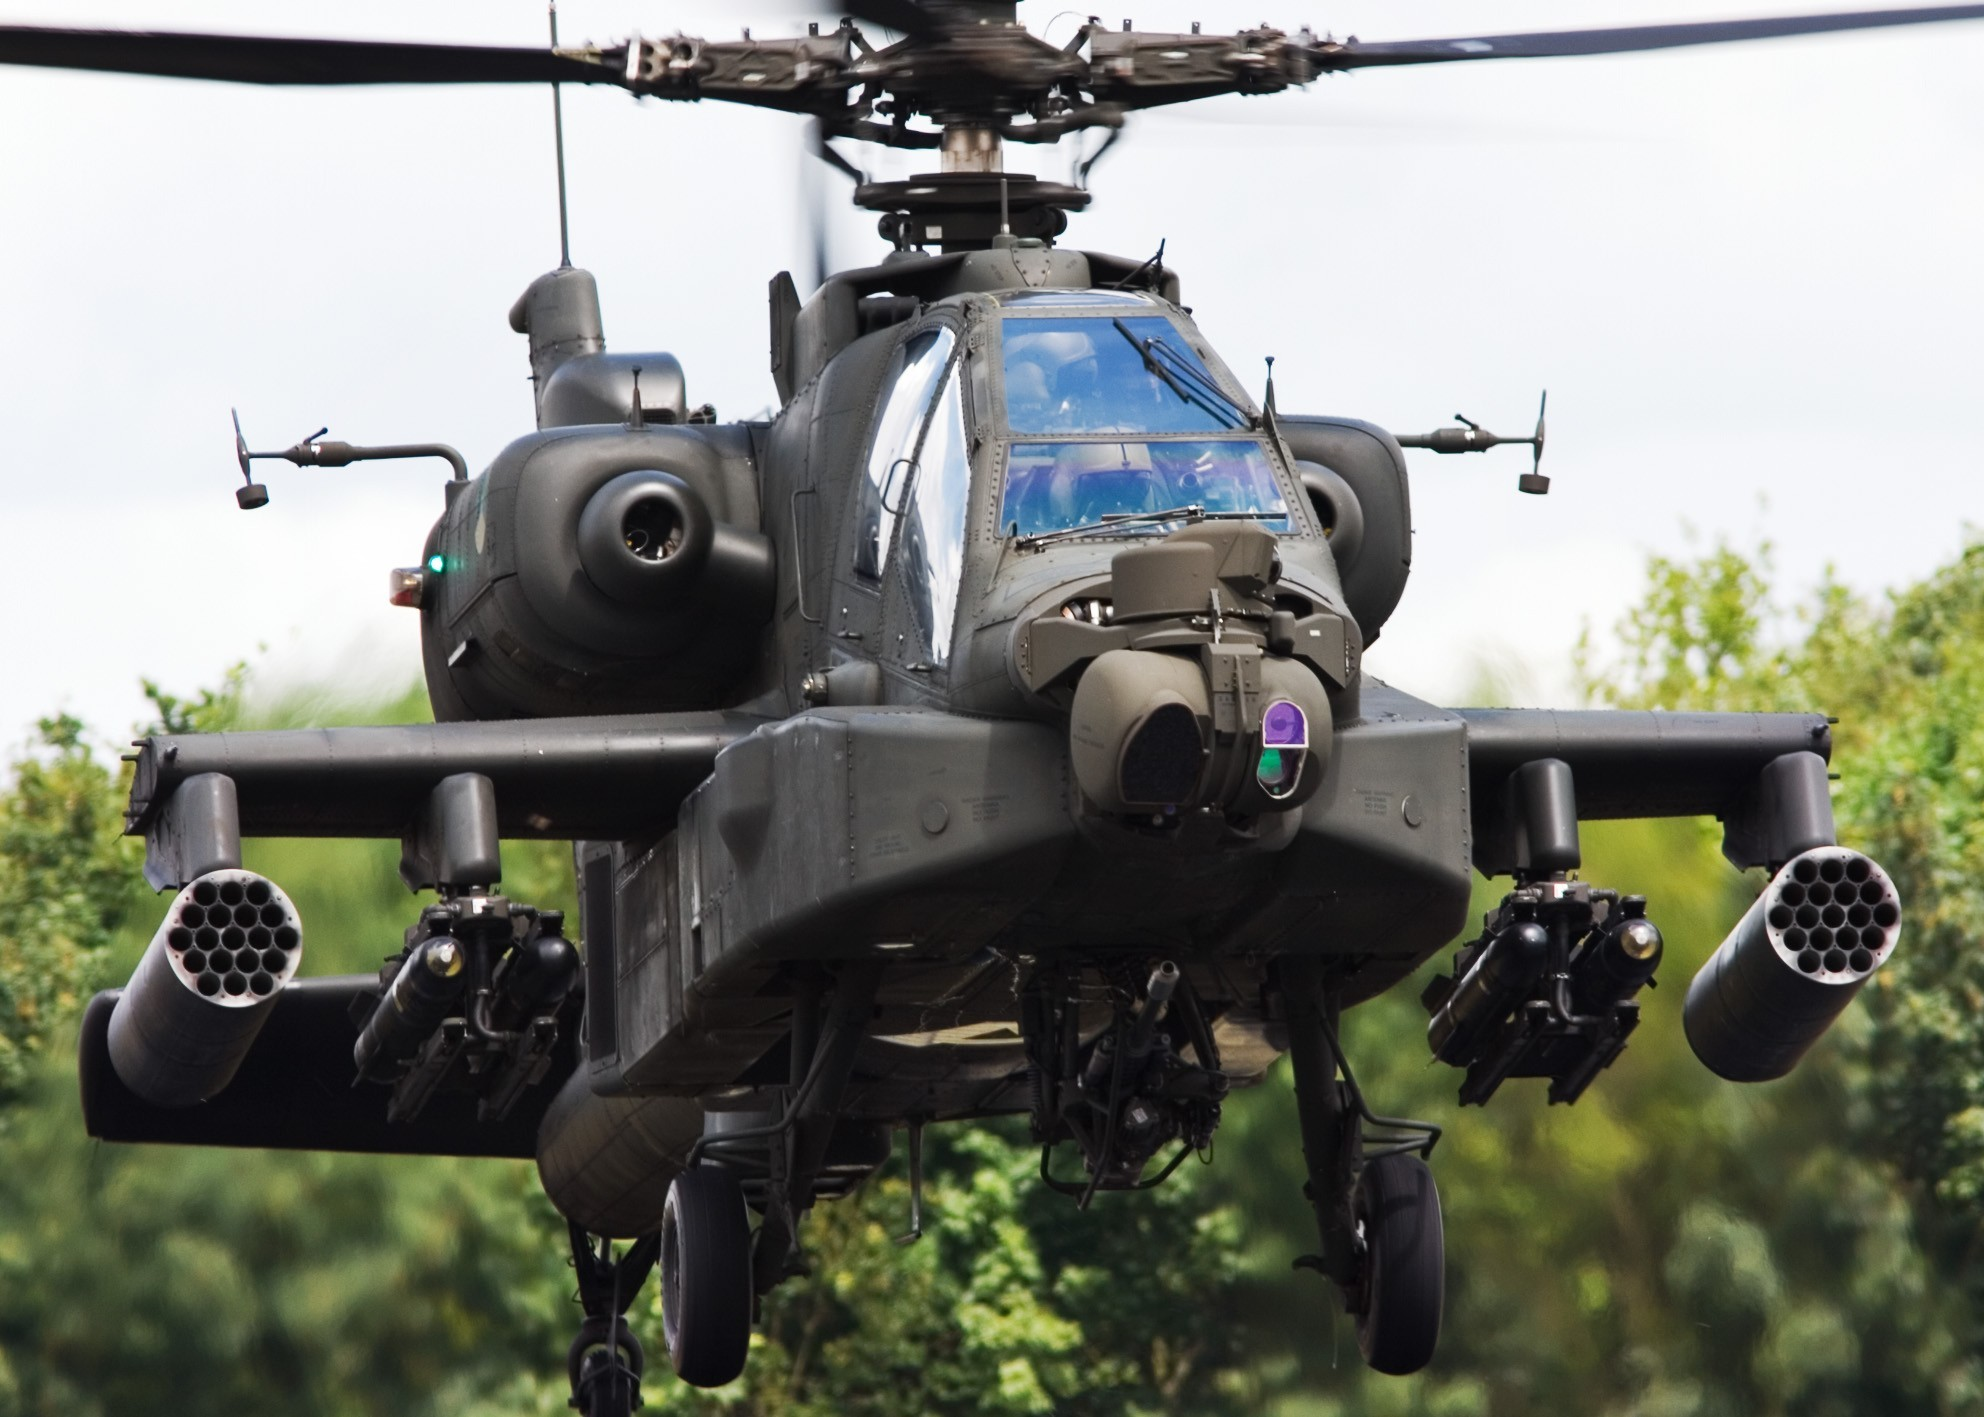 Army apache military helicopters chopper us ah-64 ...